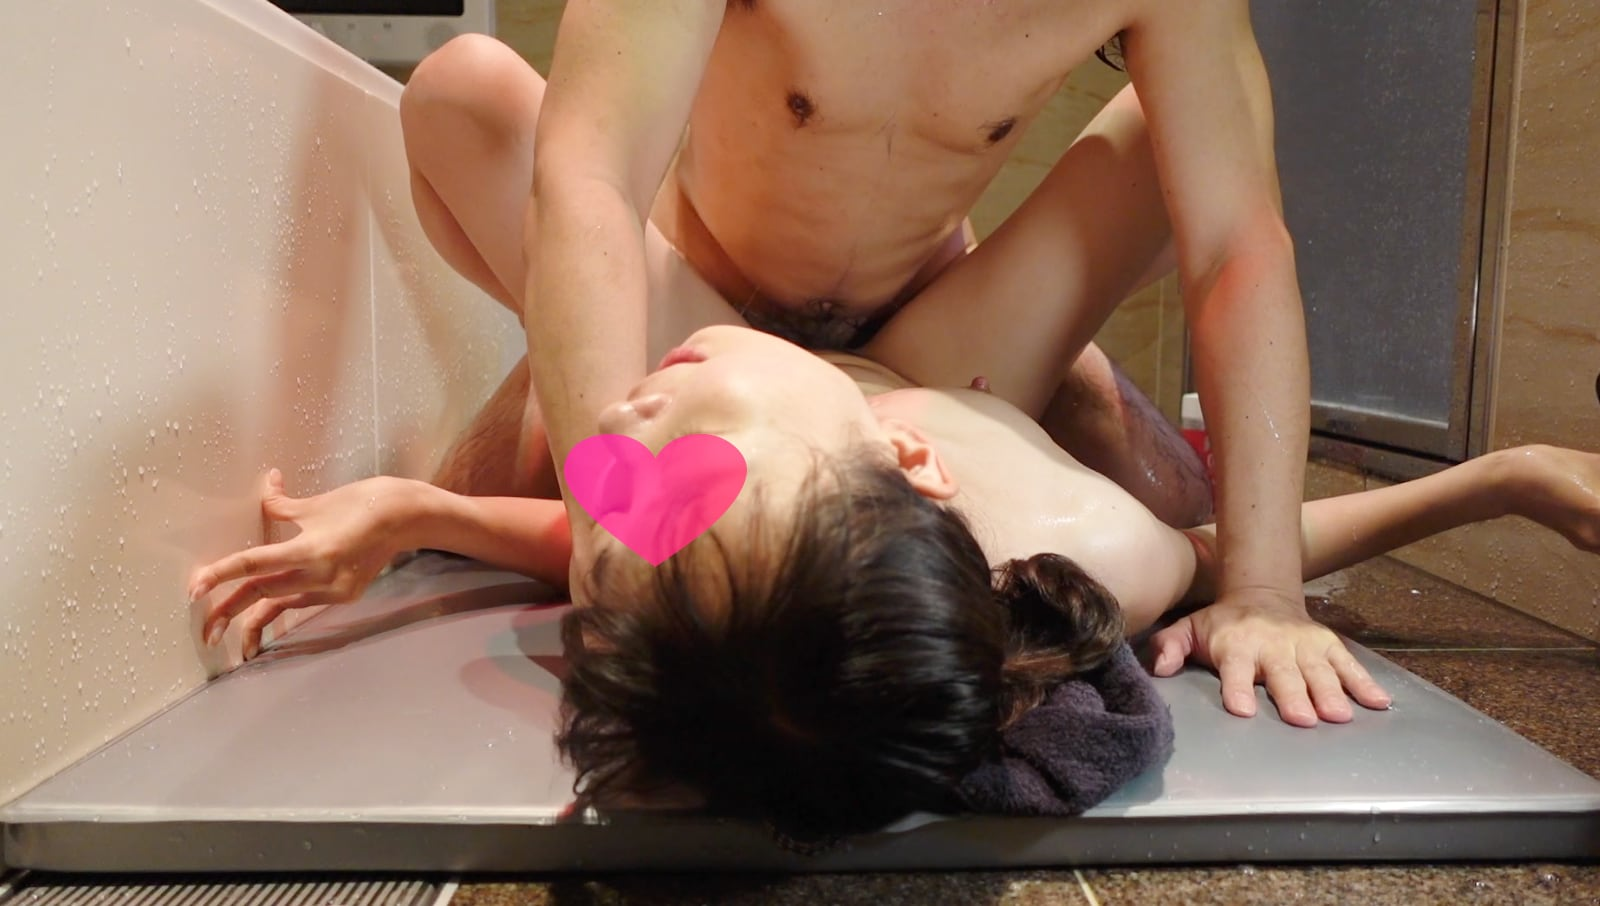 FC2 PPV 1641658 2nd round of vaginal cum shot with pseudo soap play on mat ❤️ Beautiful breasts of Mayumi